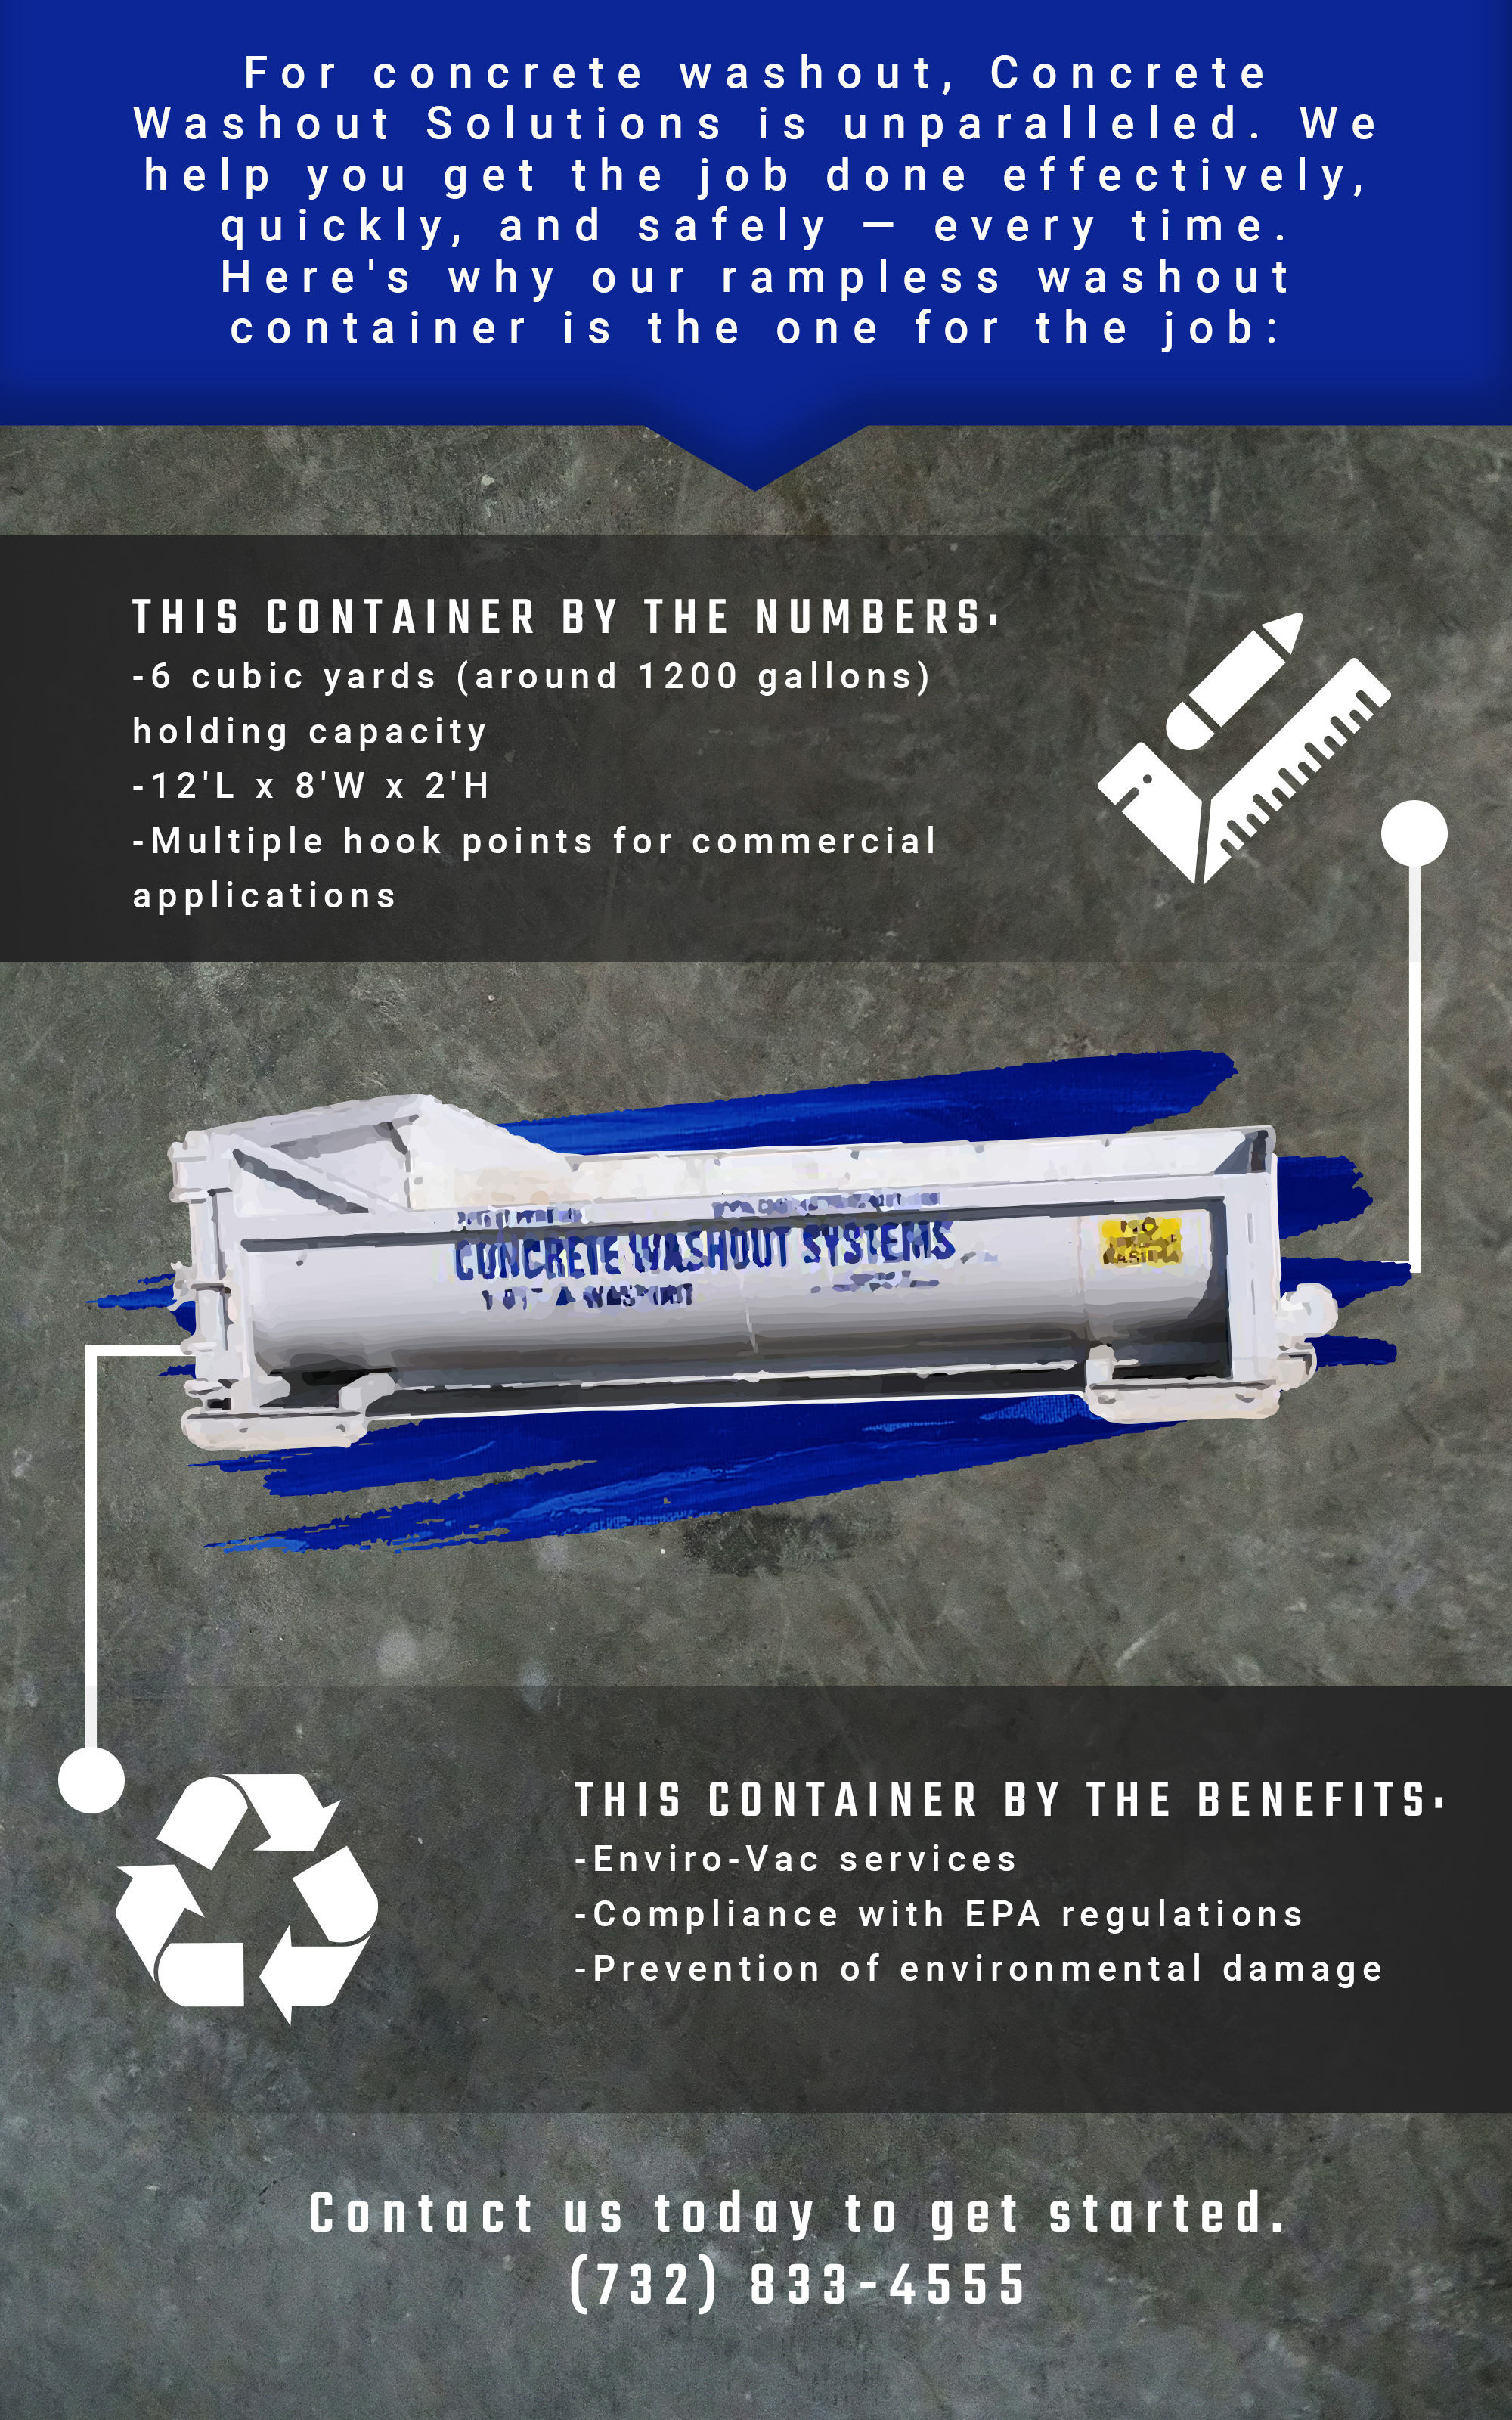 Infographic detailing the benefits of rampless washout containers.